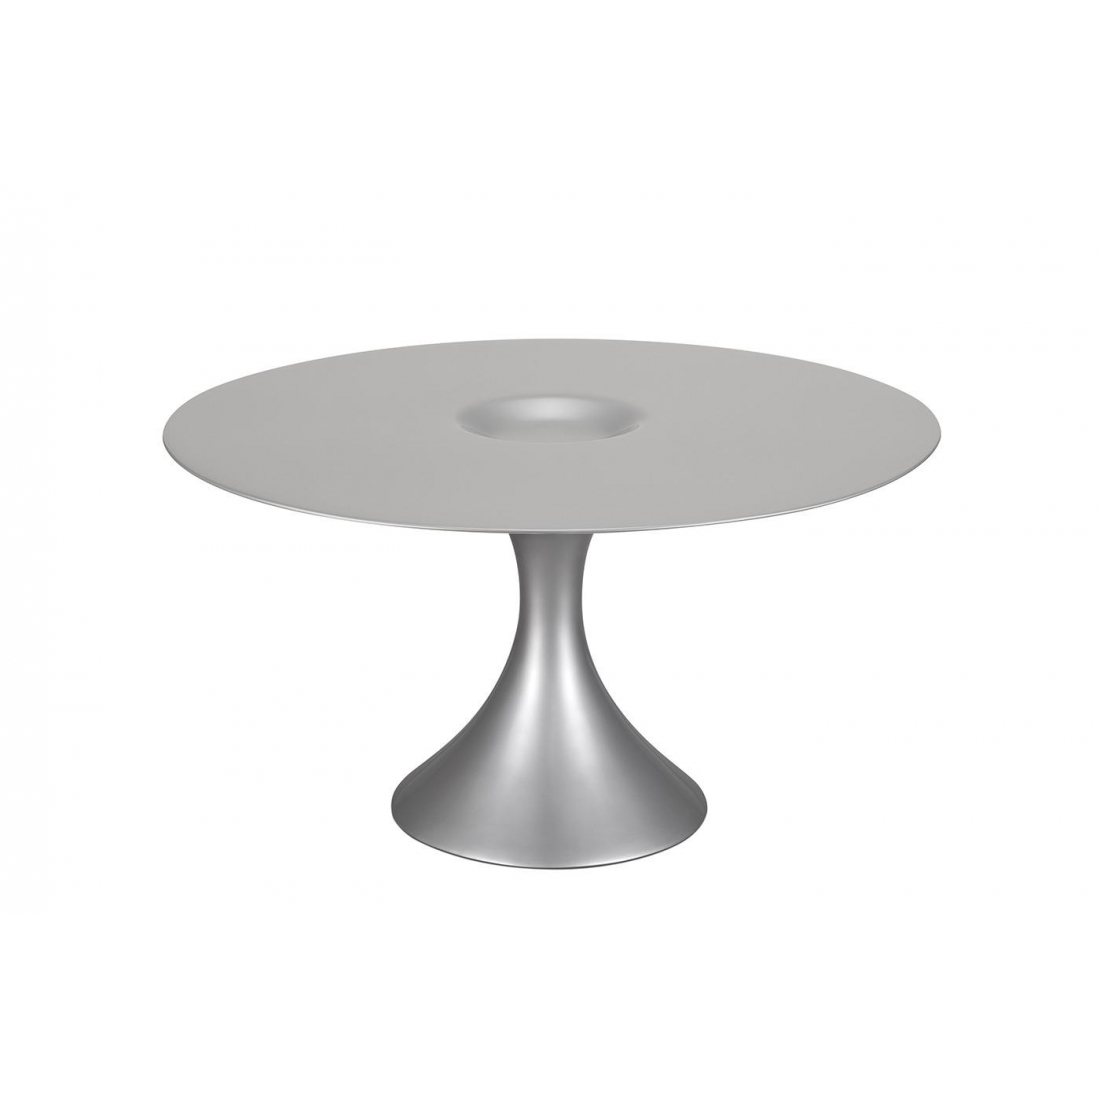 Table salle a manger ronde gaeaforms zendart design - Table salle a manger ronde ...